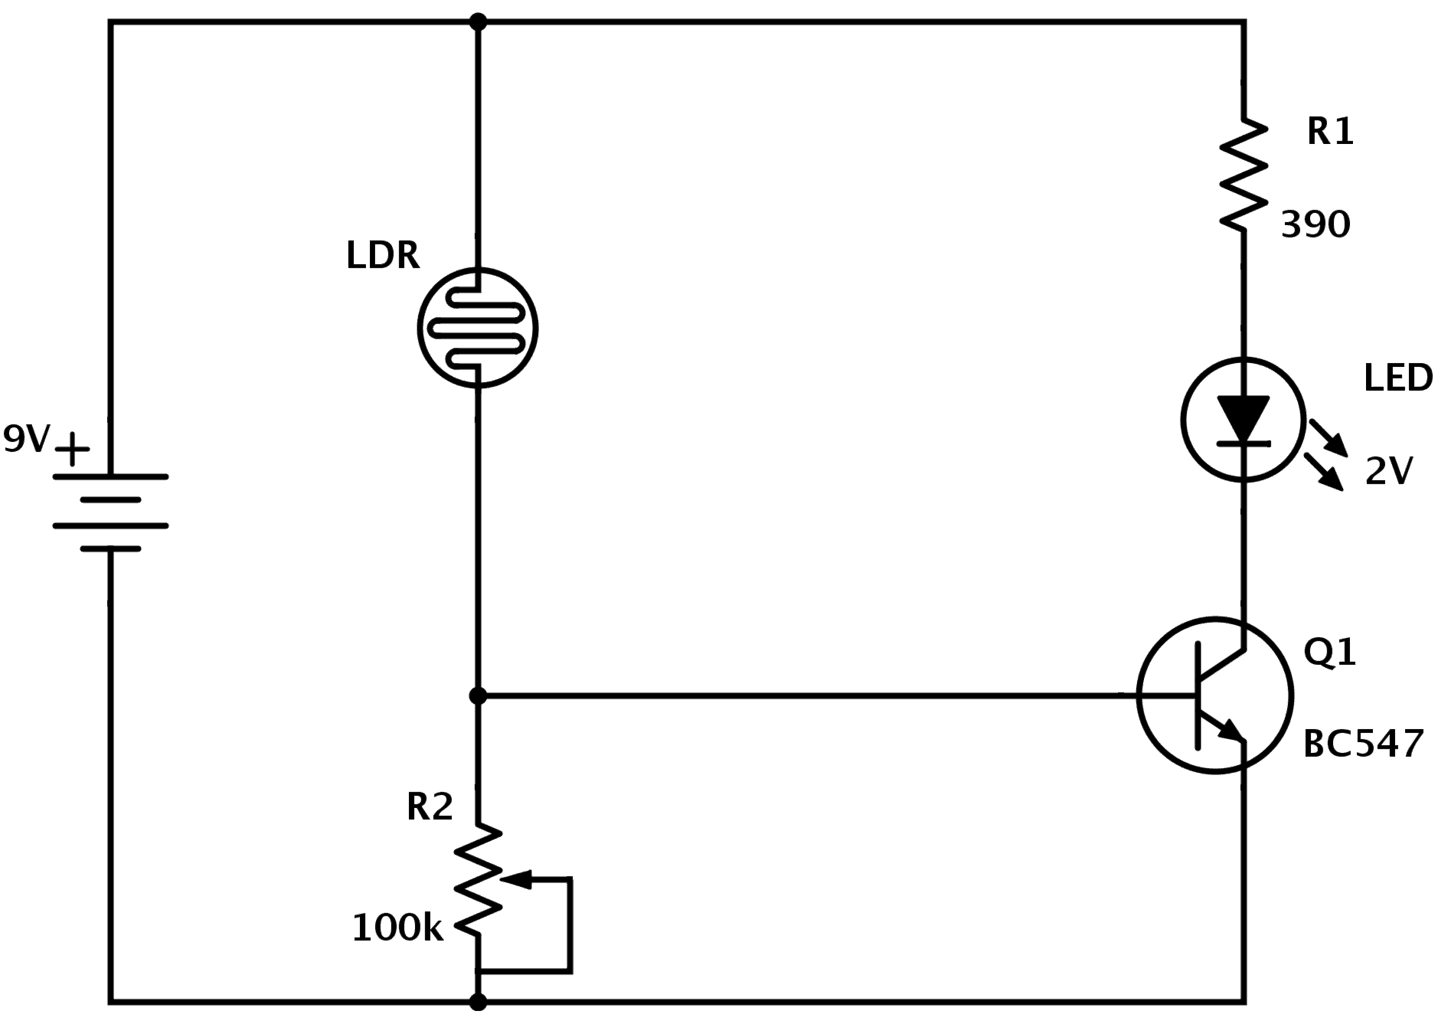 circuit diagram how to read and understand any schematic rh build electronic circuits com circuit diagram builder circuit diagram maker